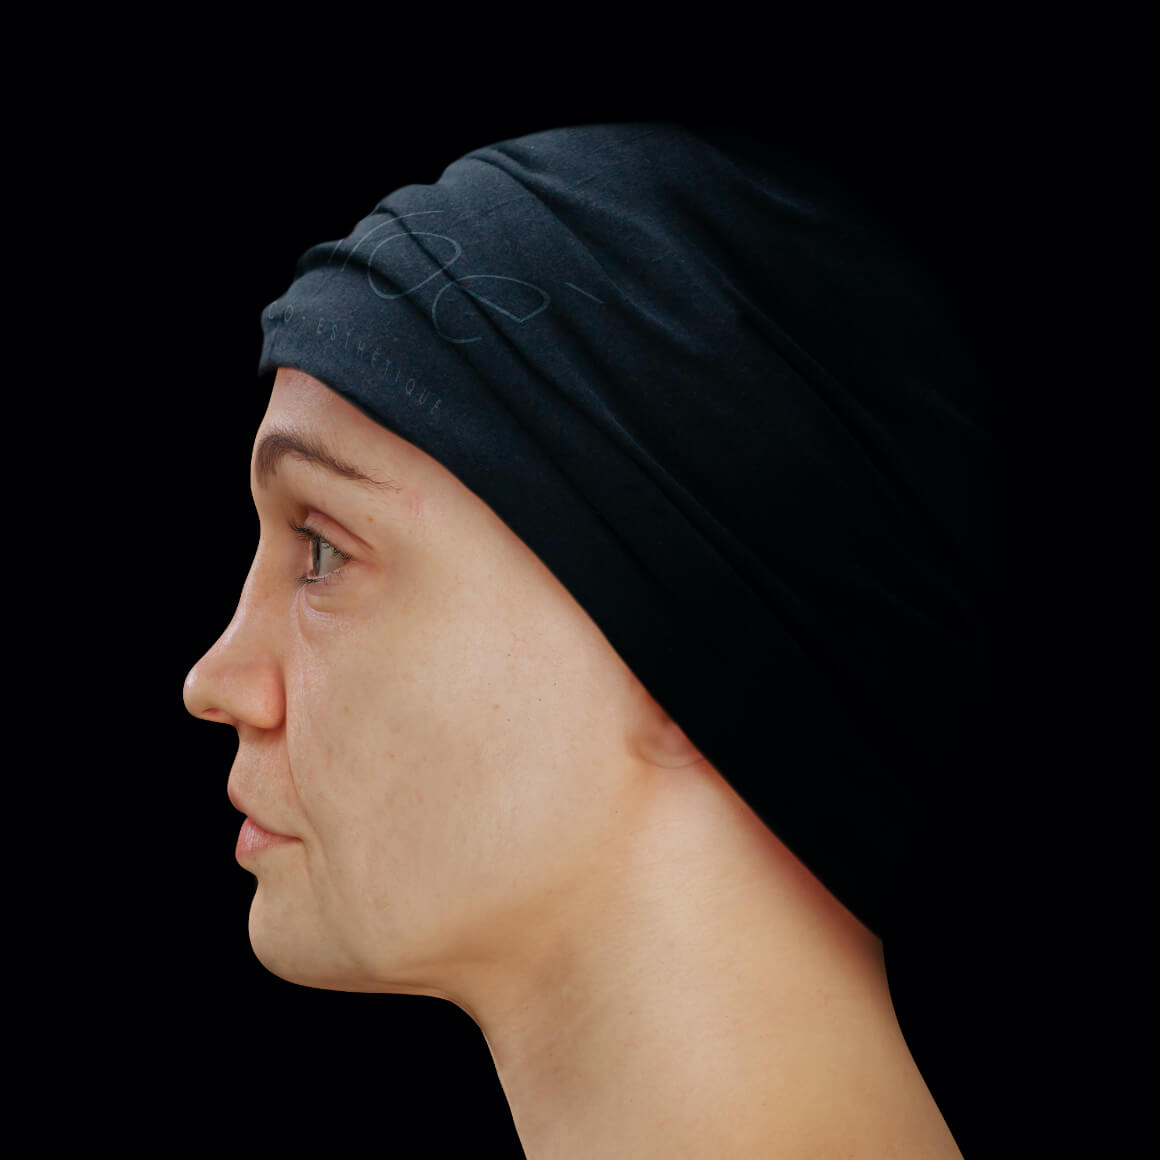 Female patient from Clinique Chloé positioned sideways showing facial skin laxity